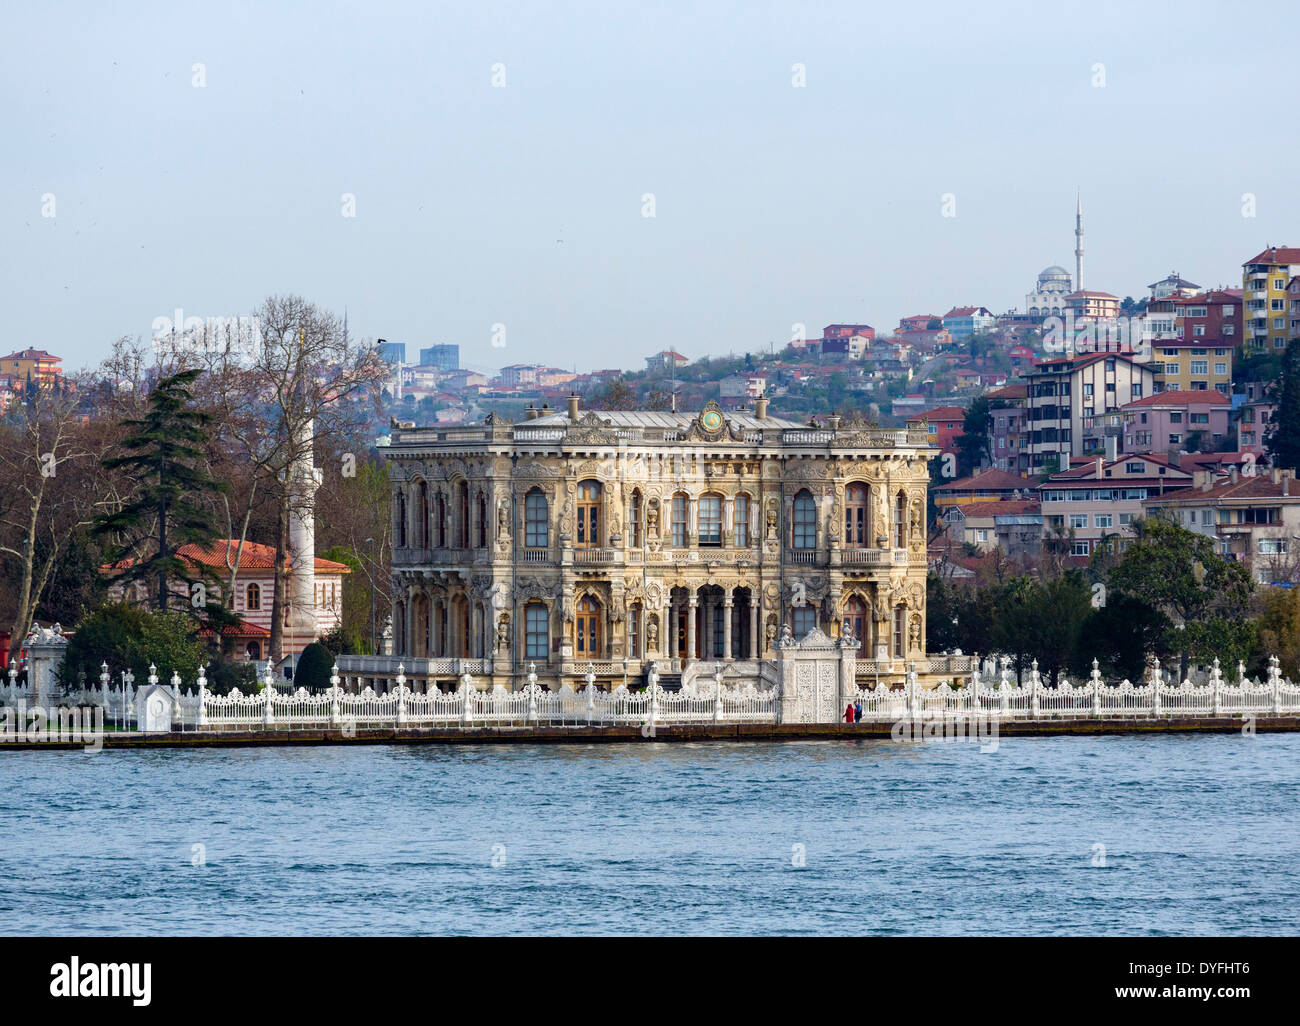 The Küçüksu Palace in Beykoz on the Asian shore of the Bosphorus, viewed from a Bosphorus cruise boat, Istanbul, Turkey - Stock Image